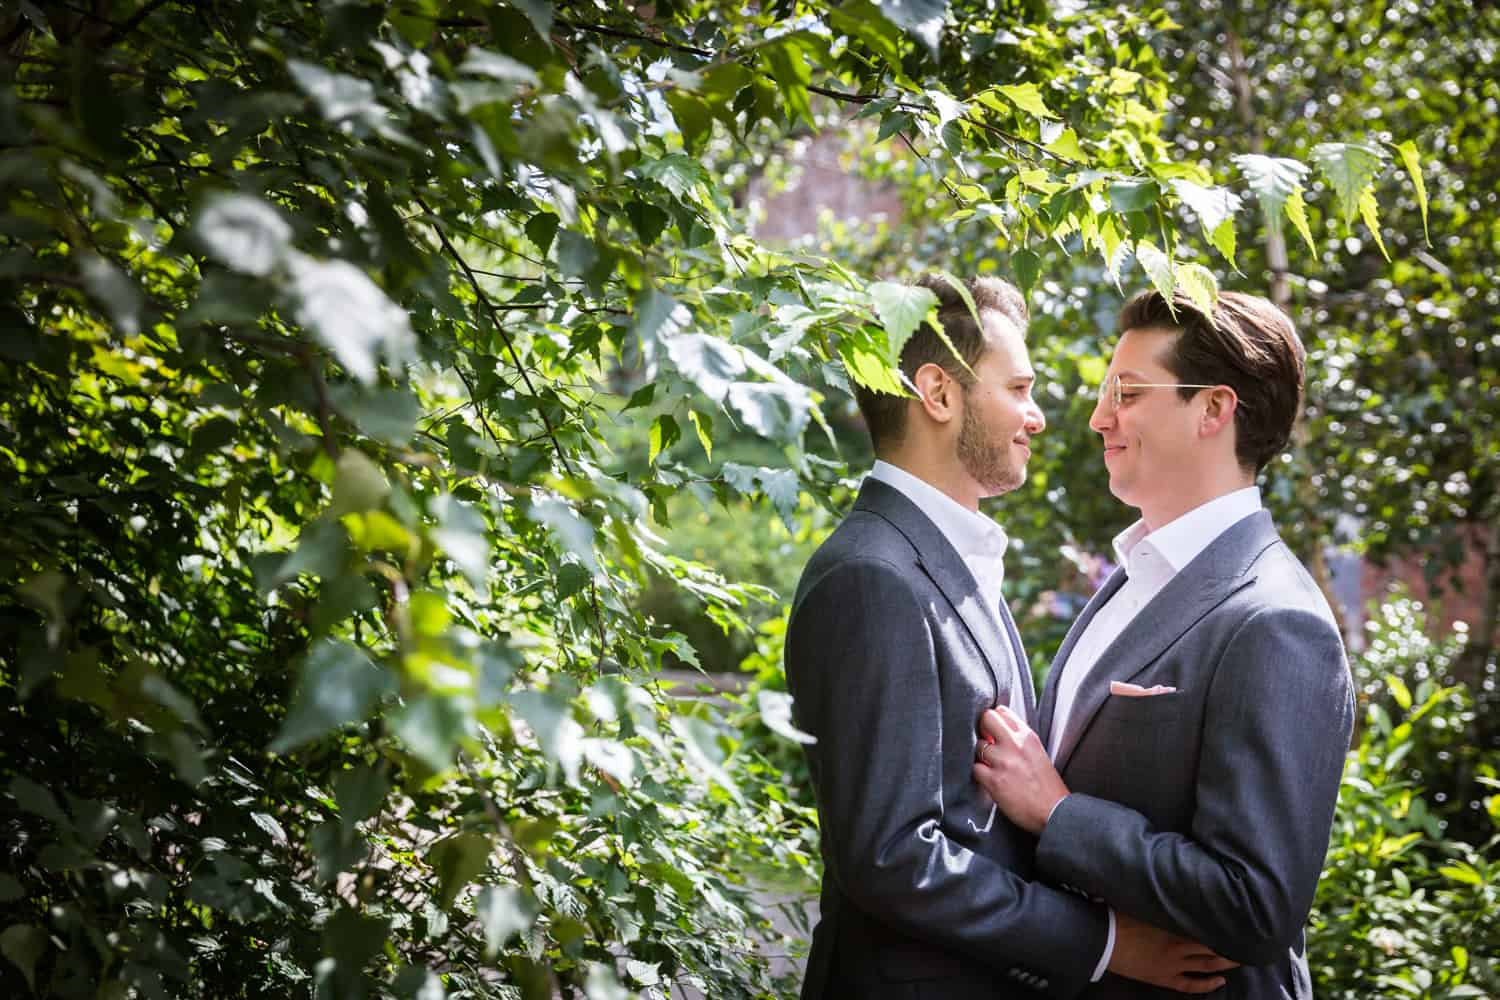 Greenpoint Loft wedding photos of two grooms in bushes at St. Ann's Warehouse